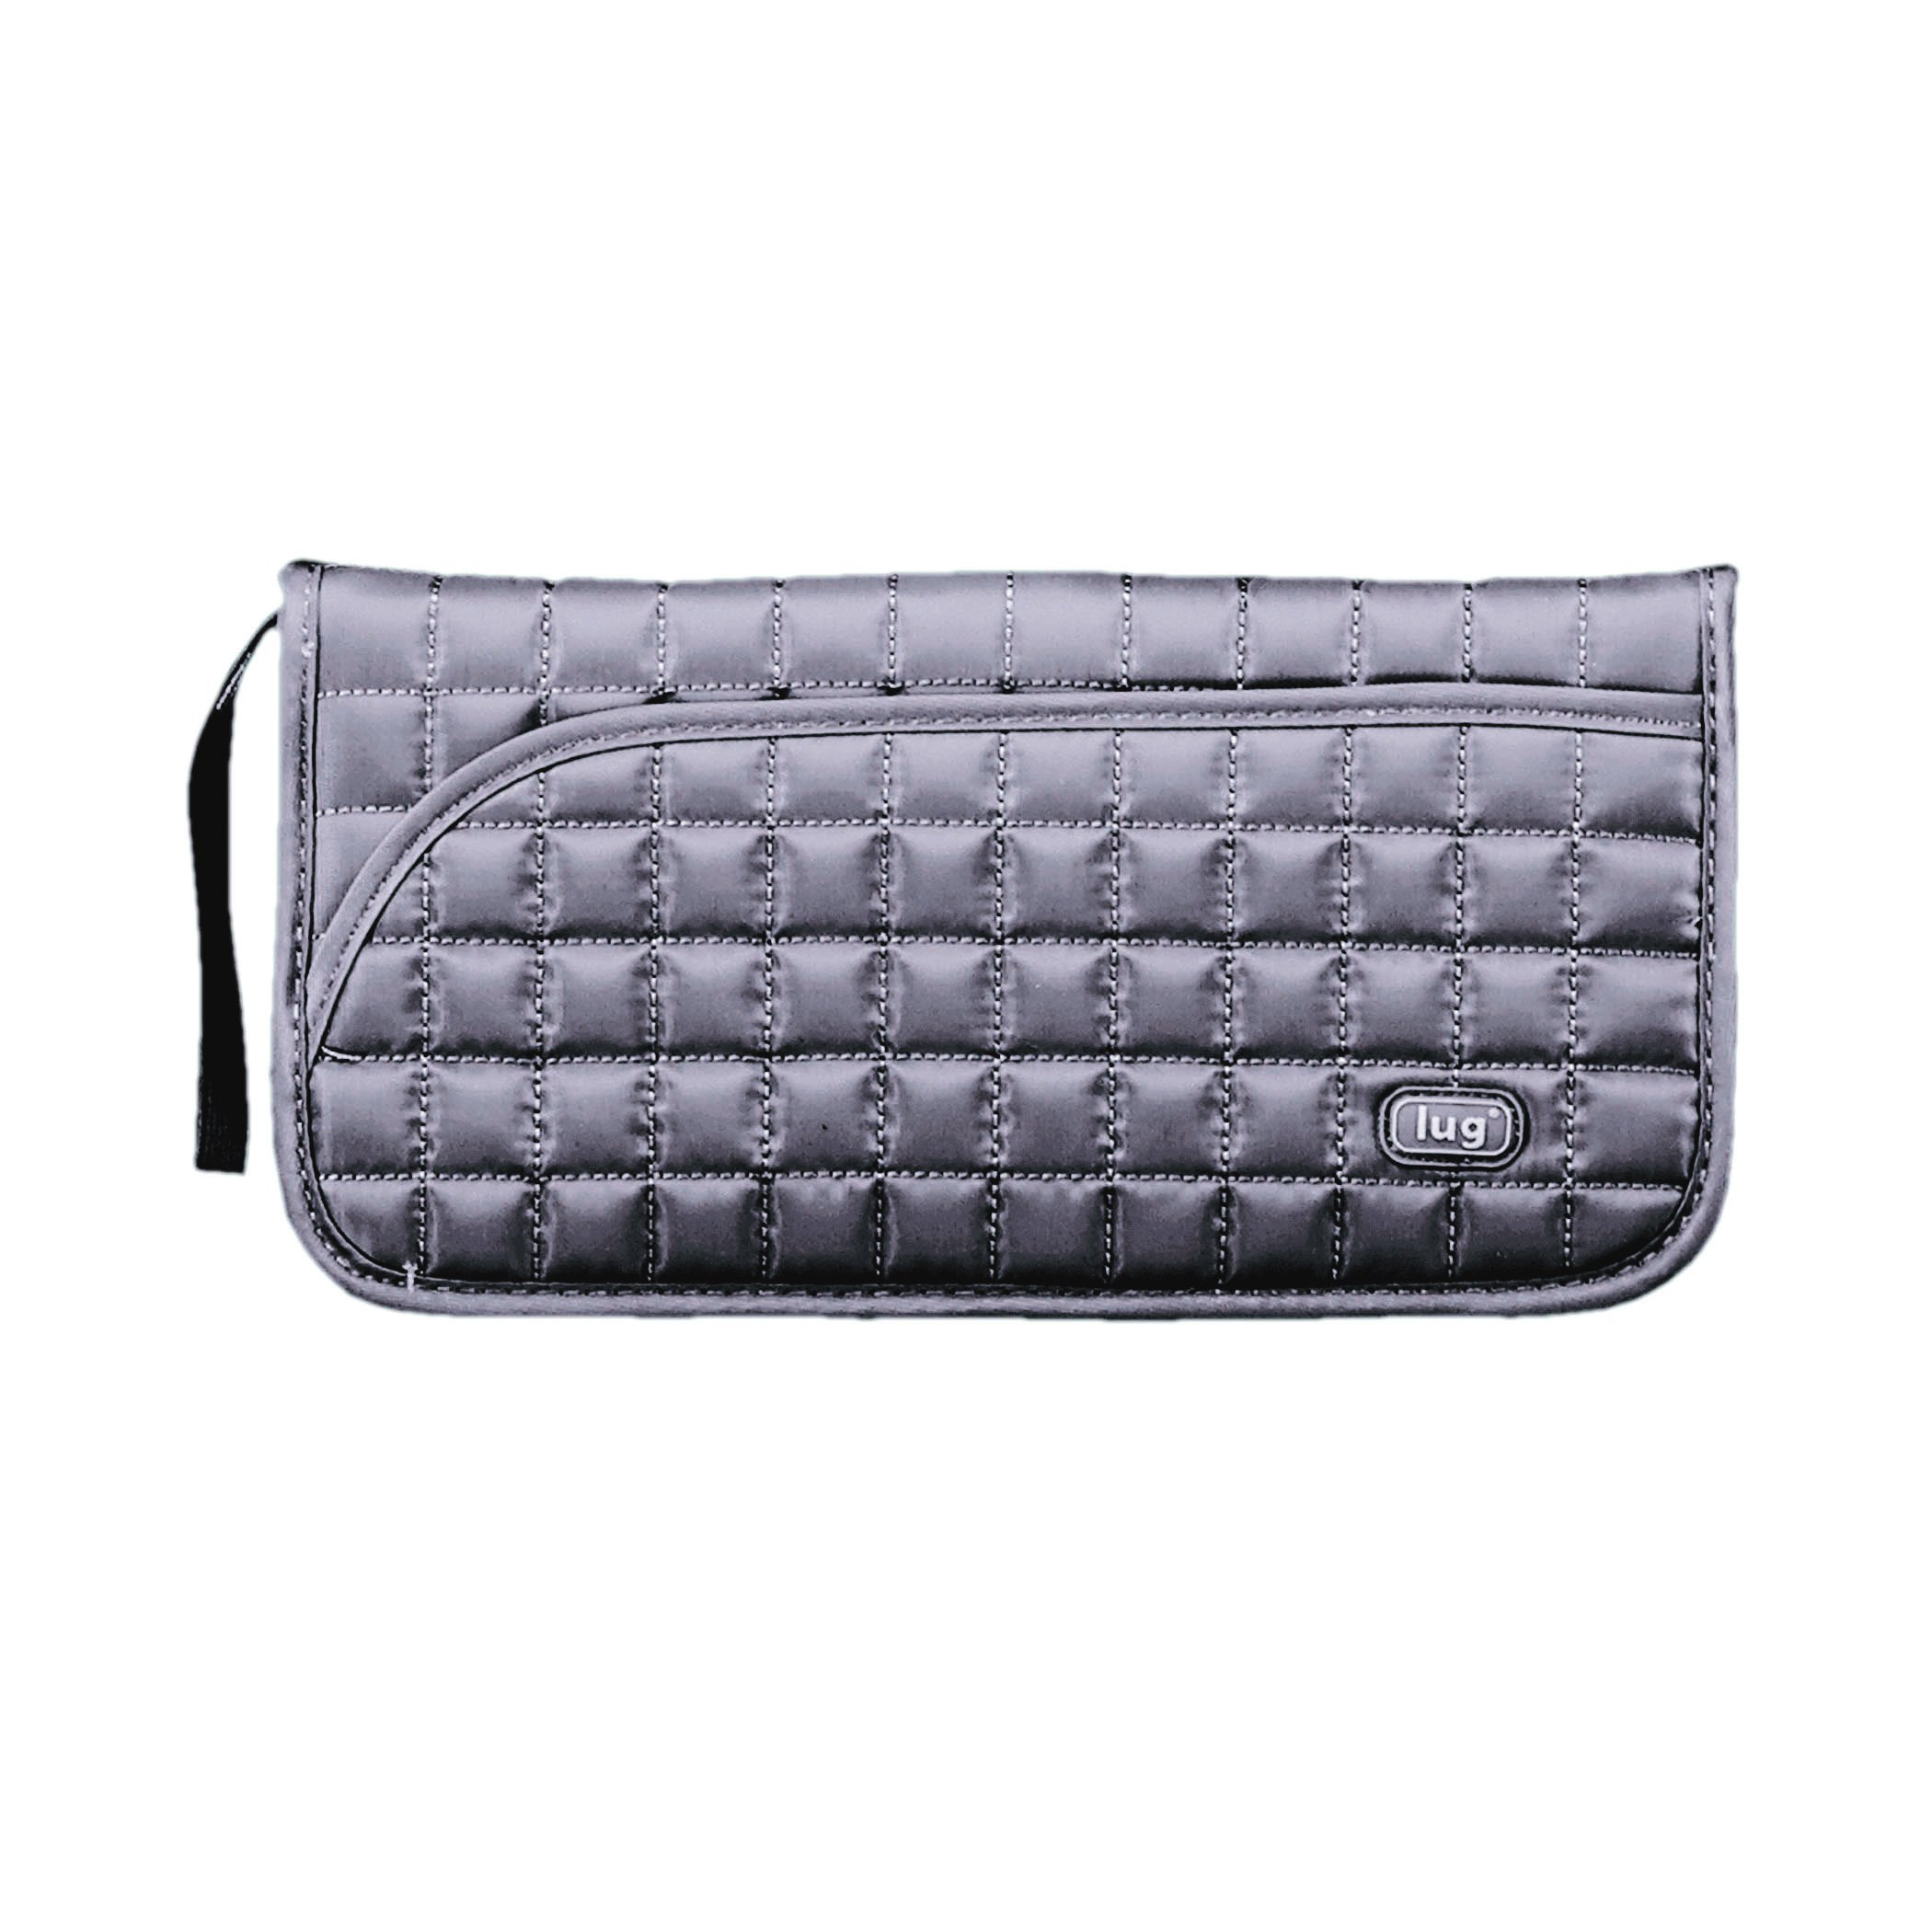 Lug Tango Travel Wallet, Pearl Grey by Lug